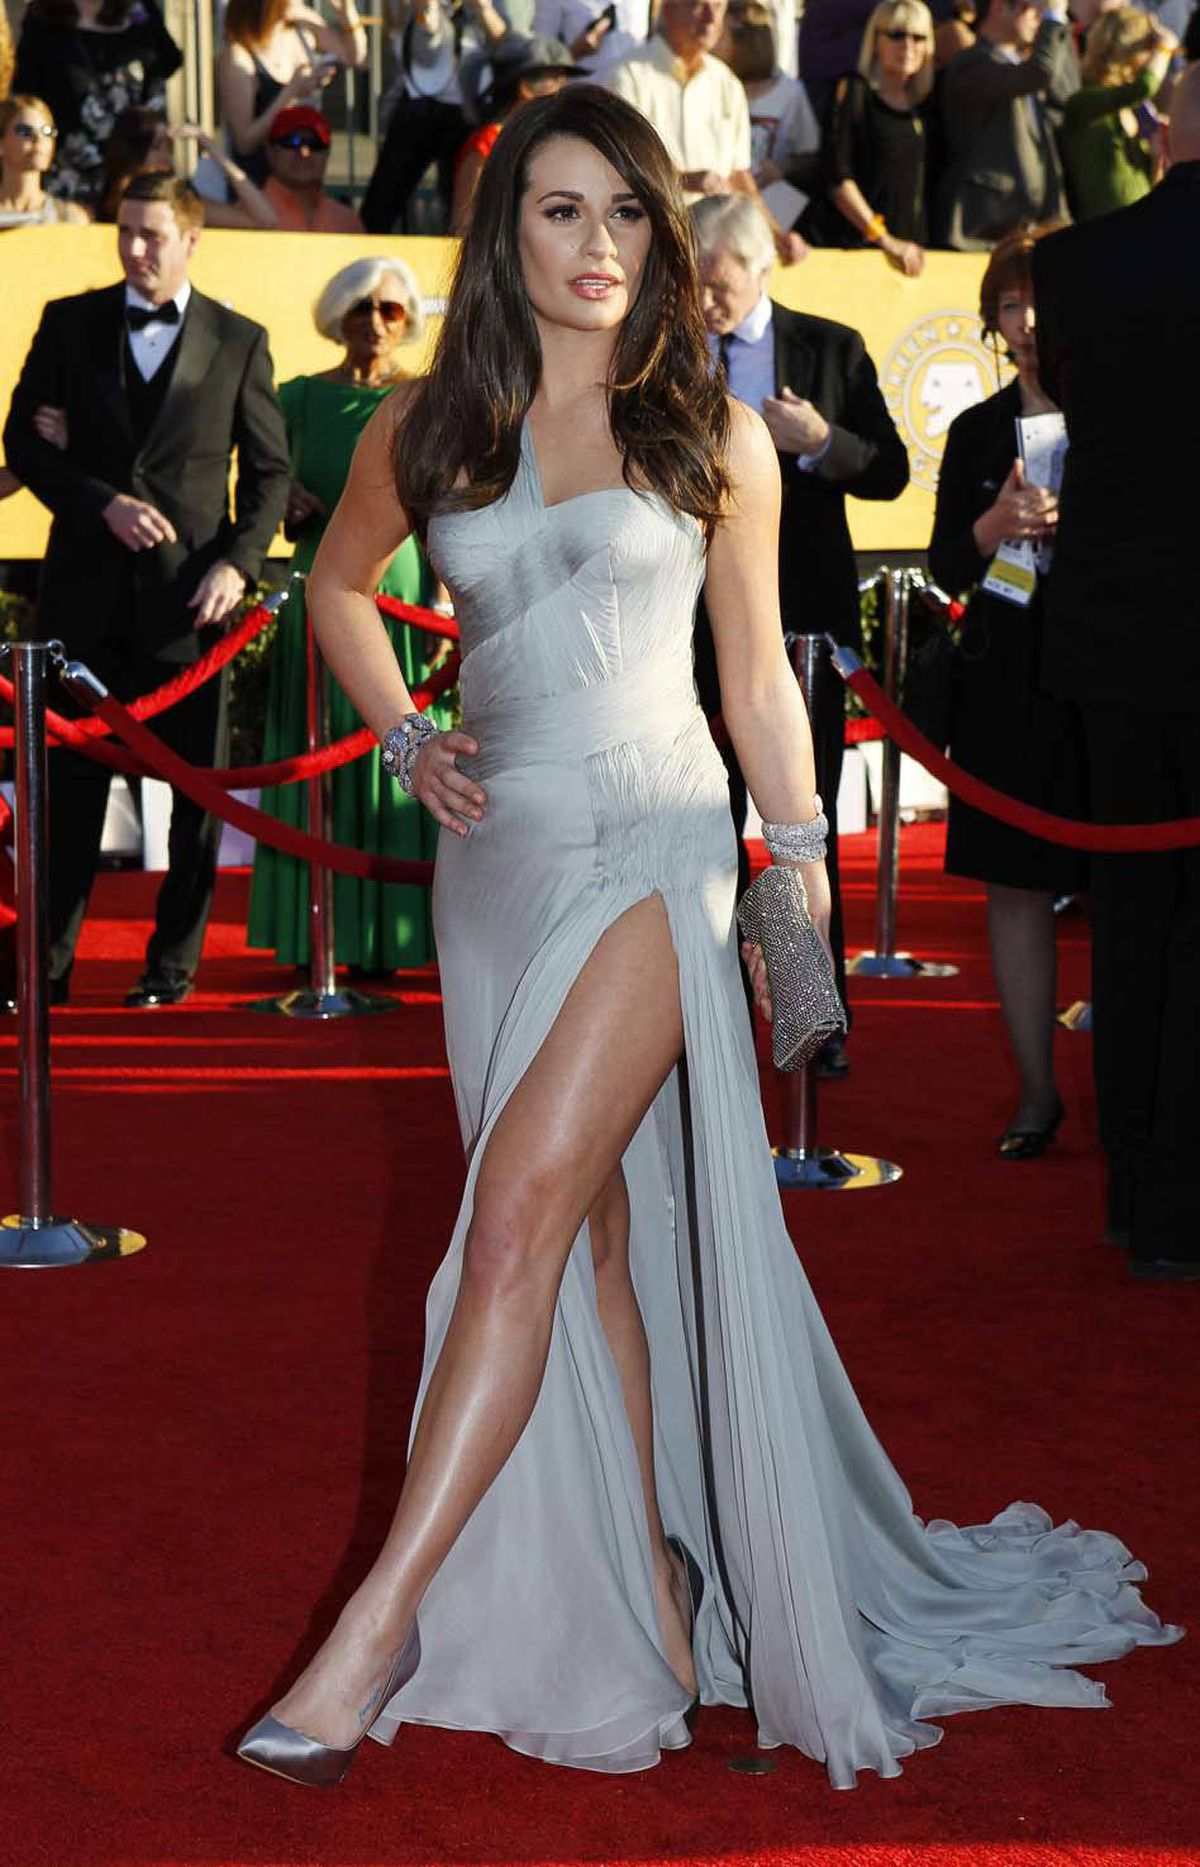 Actress Lea Michele airs out a leg on the red carpet at the SAG awards in Los Angeles Sunday.